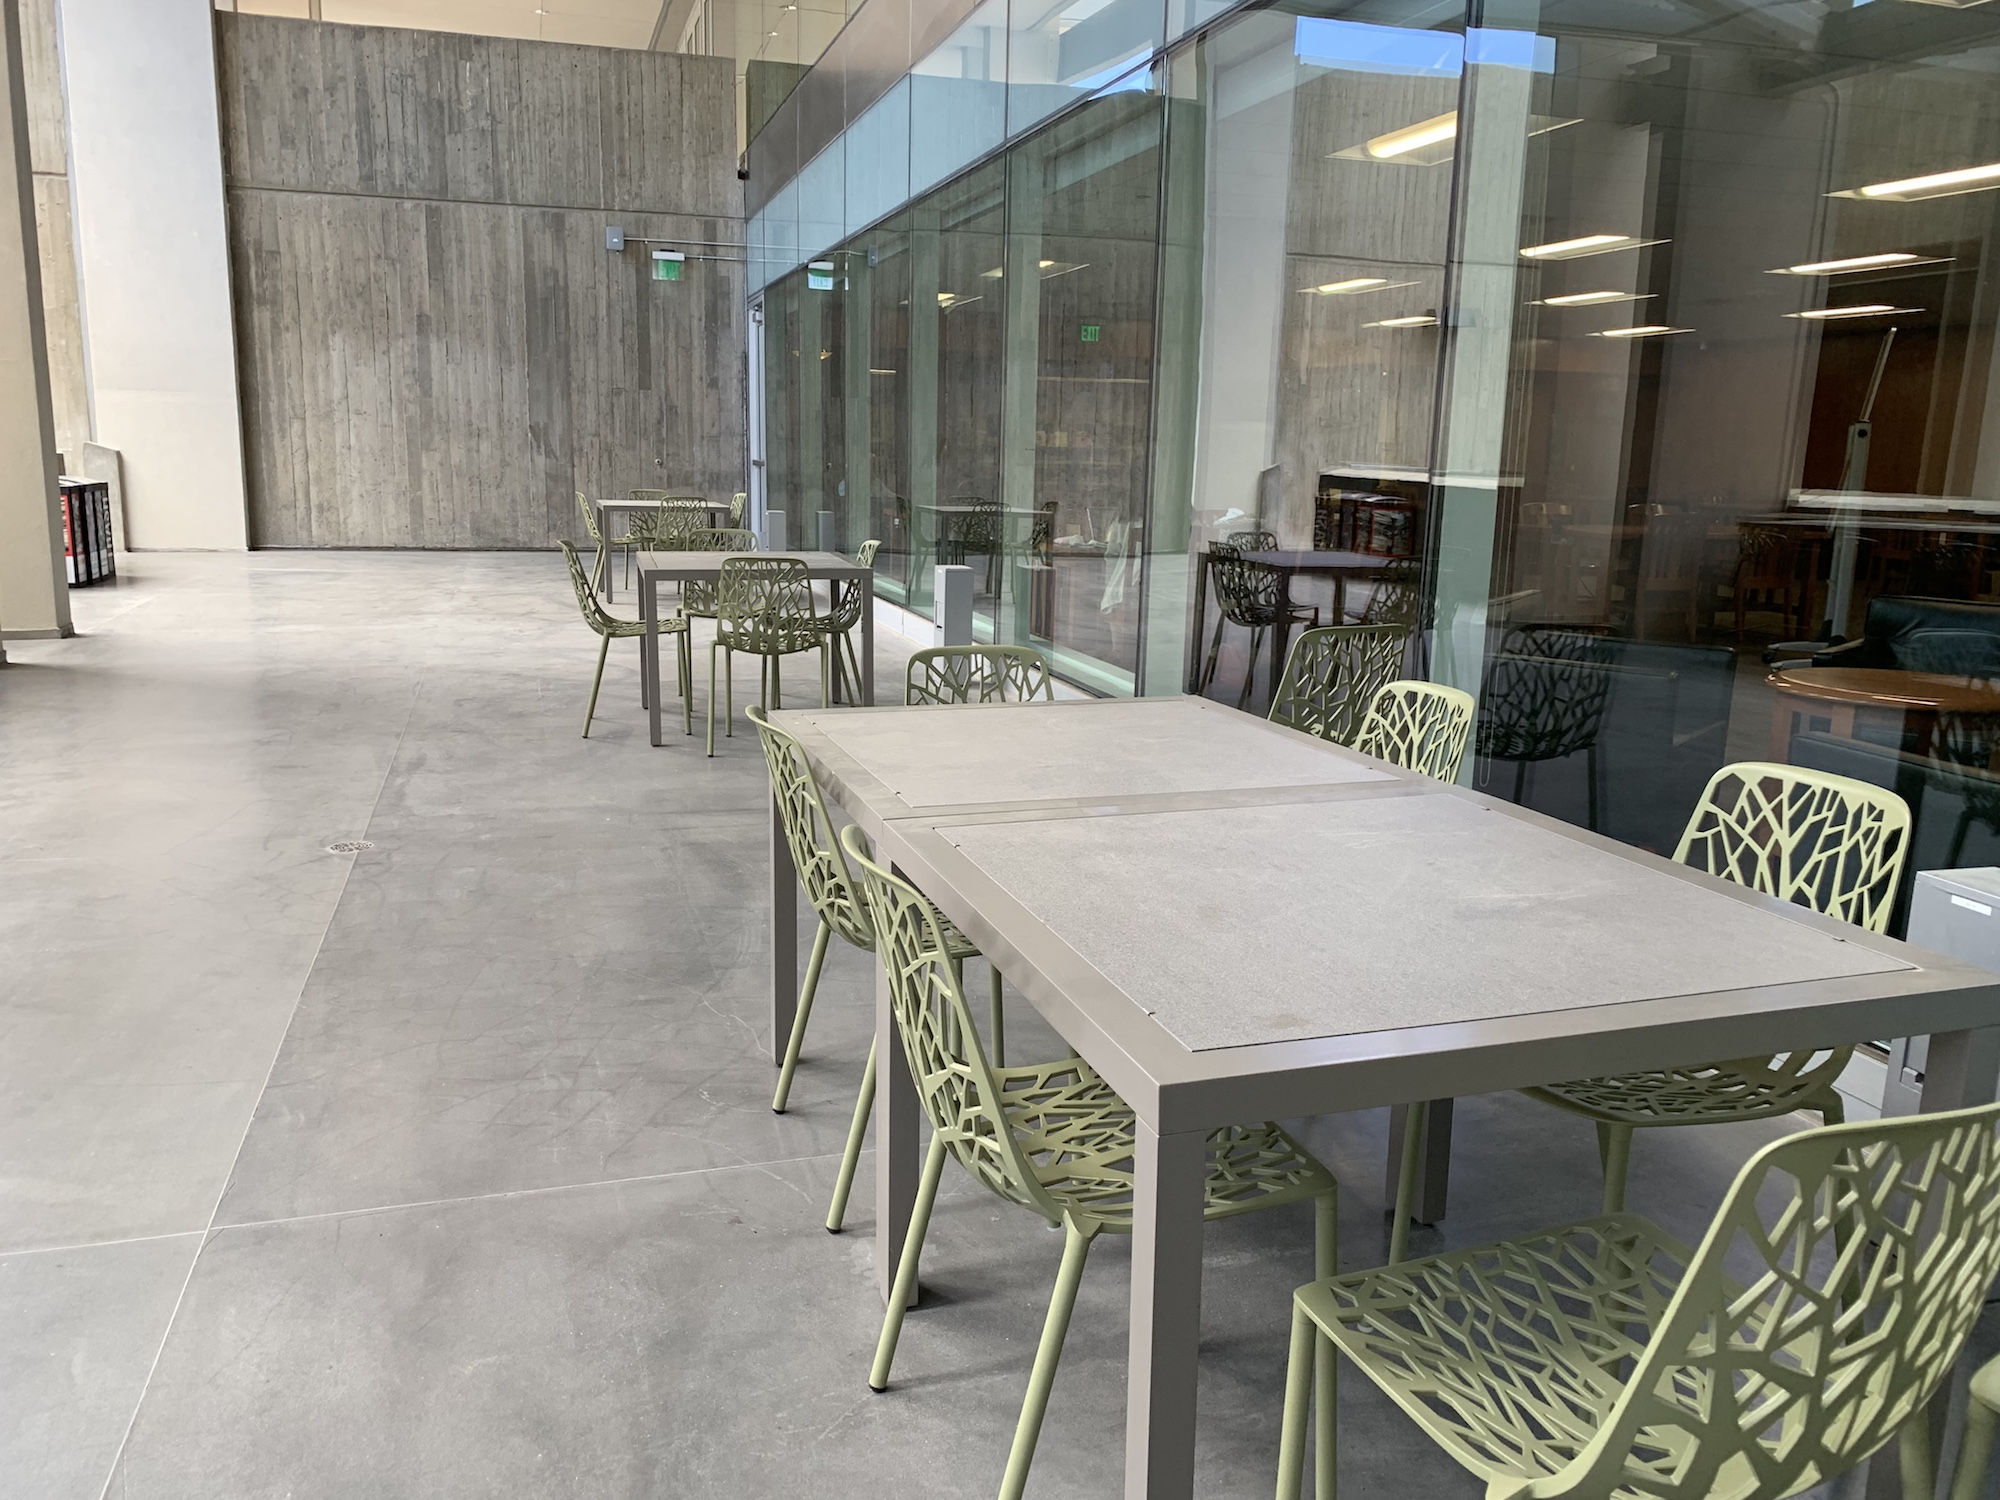 Outside tables and chairs next to windows in the courtyard.